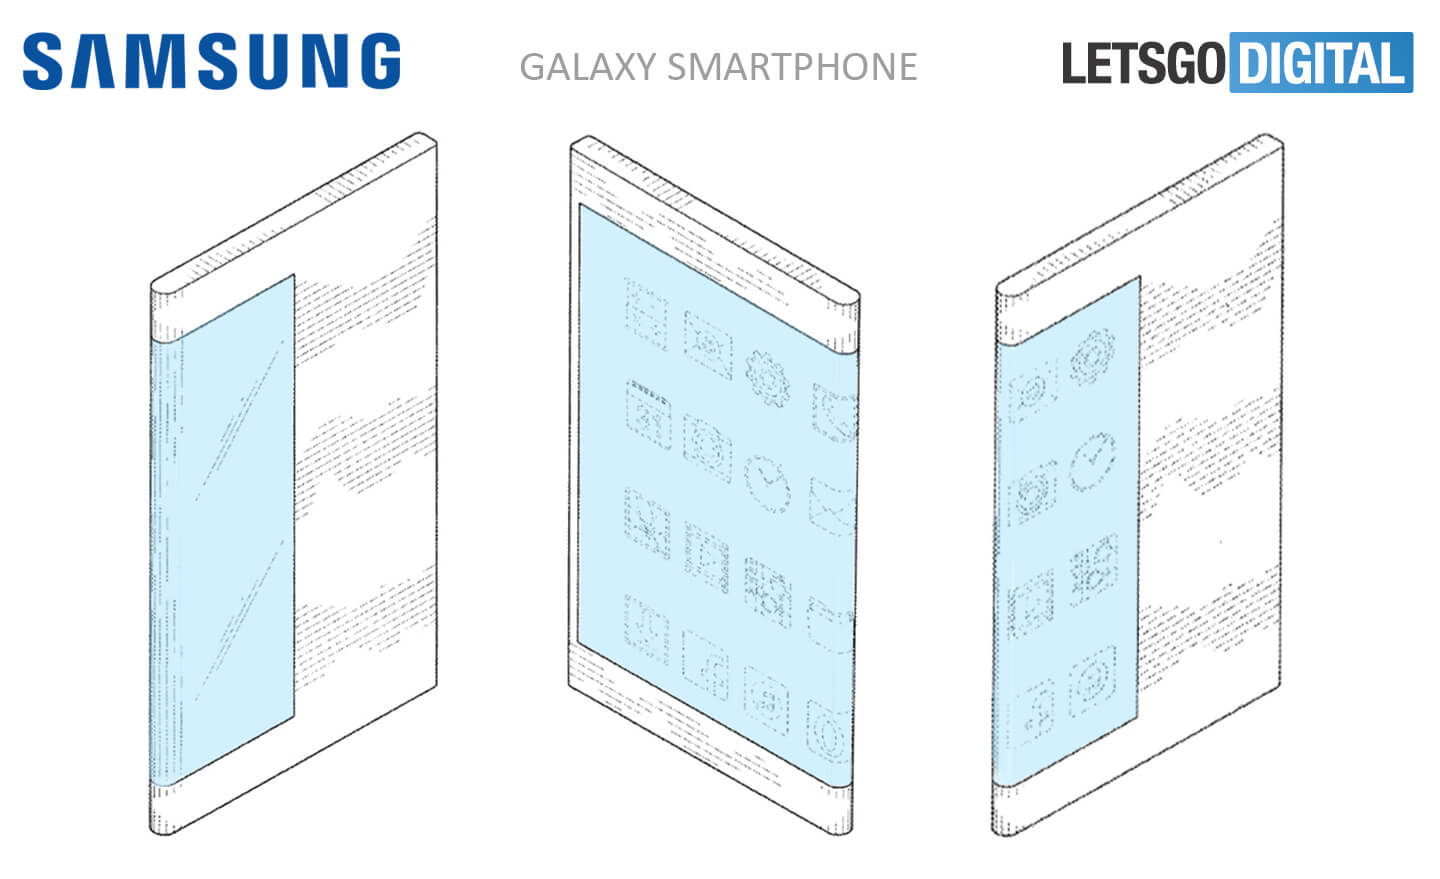 Samsung patent reveals smartphone with wraparound display